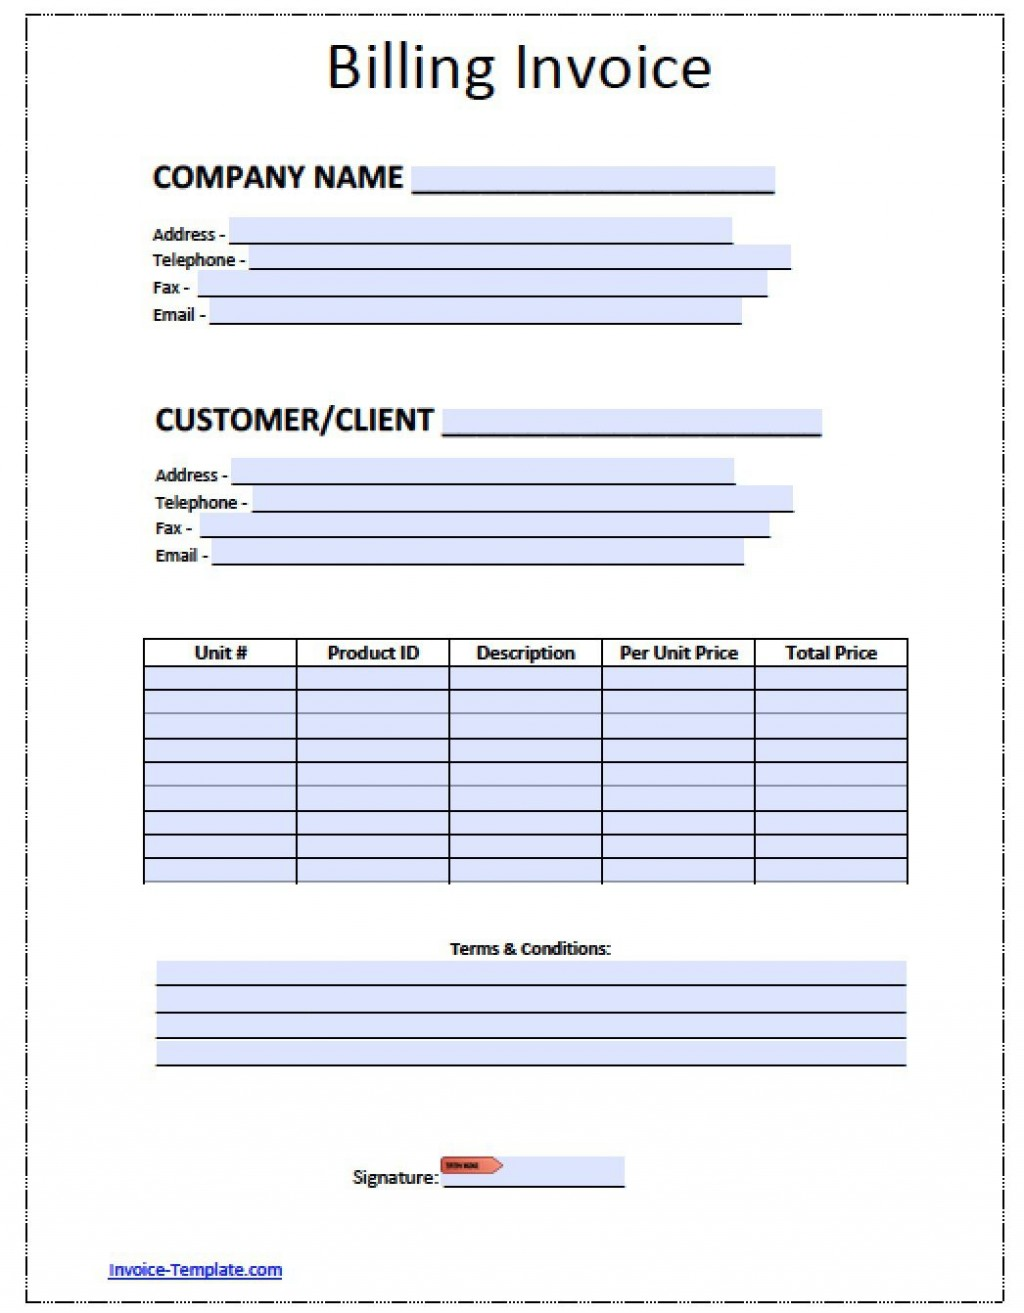 006 Unforgettable Rent Receipt Template Doc India High Resolution  HouseLarge